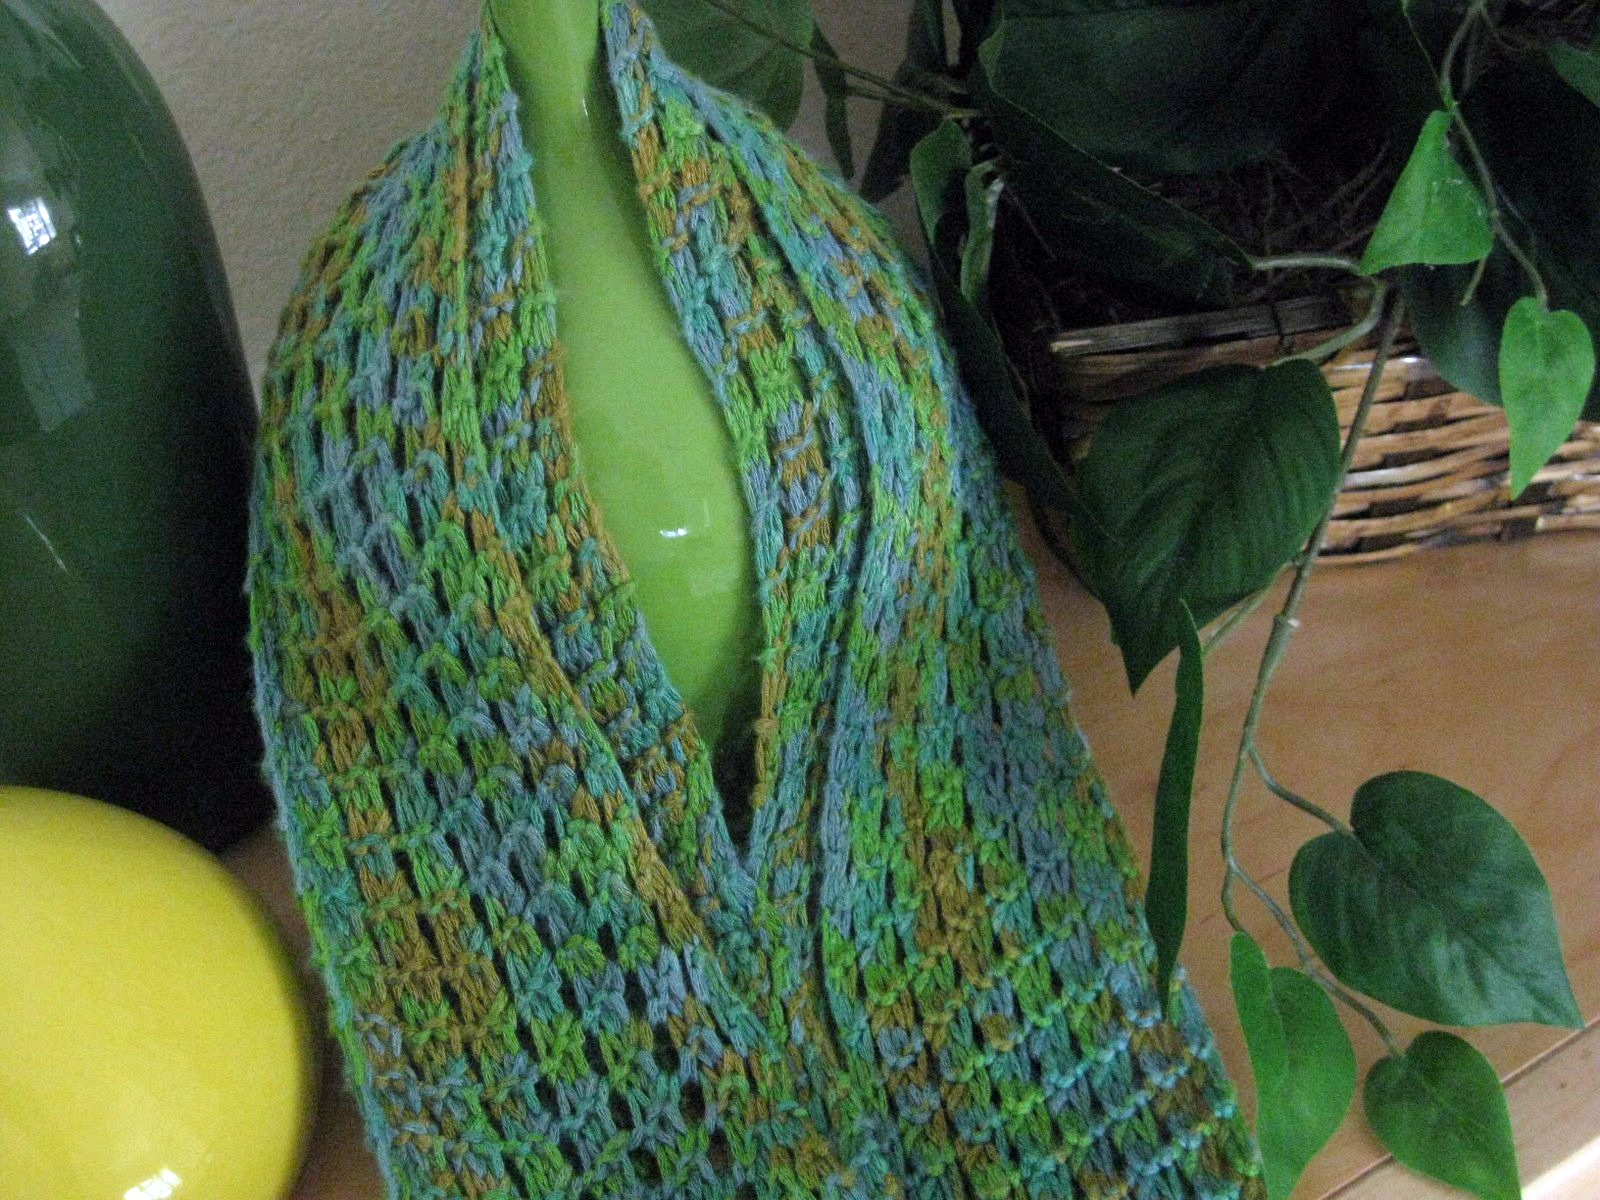 Knitting Pattern For Simple Scarf : golden bird knits: Mesh bamboo scarf knitting pattern